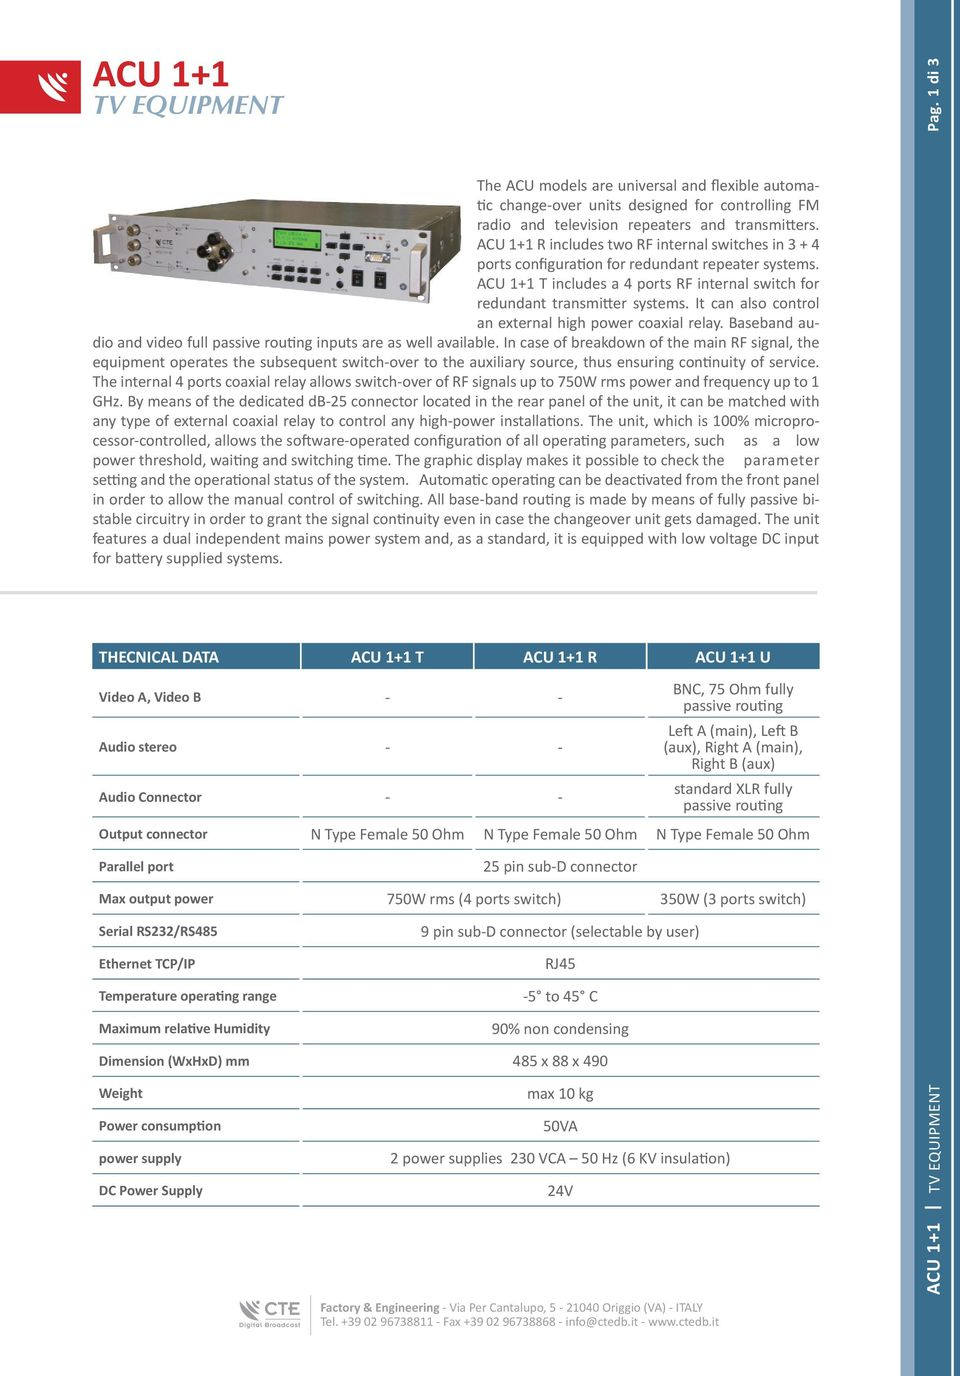 More Than 60 Years Experience Pdf Diagram Also 5 Pin Relay With Connector Moreover Universal Pct 13 It Can Control An External High Power Coaxial Baseband Audio And Video Full